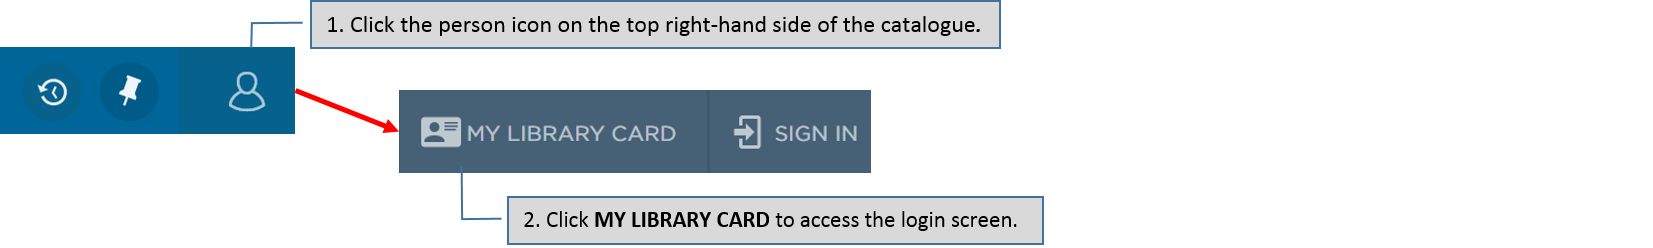 Catalogue – login